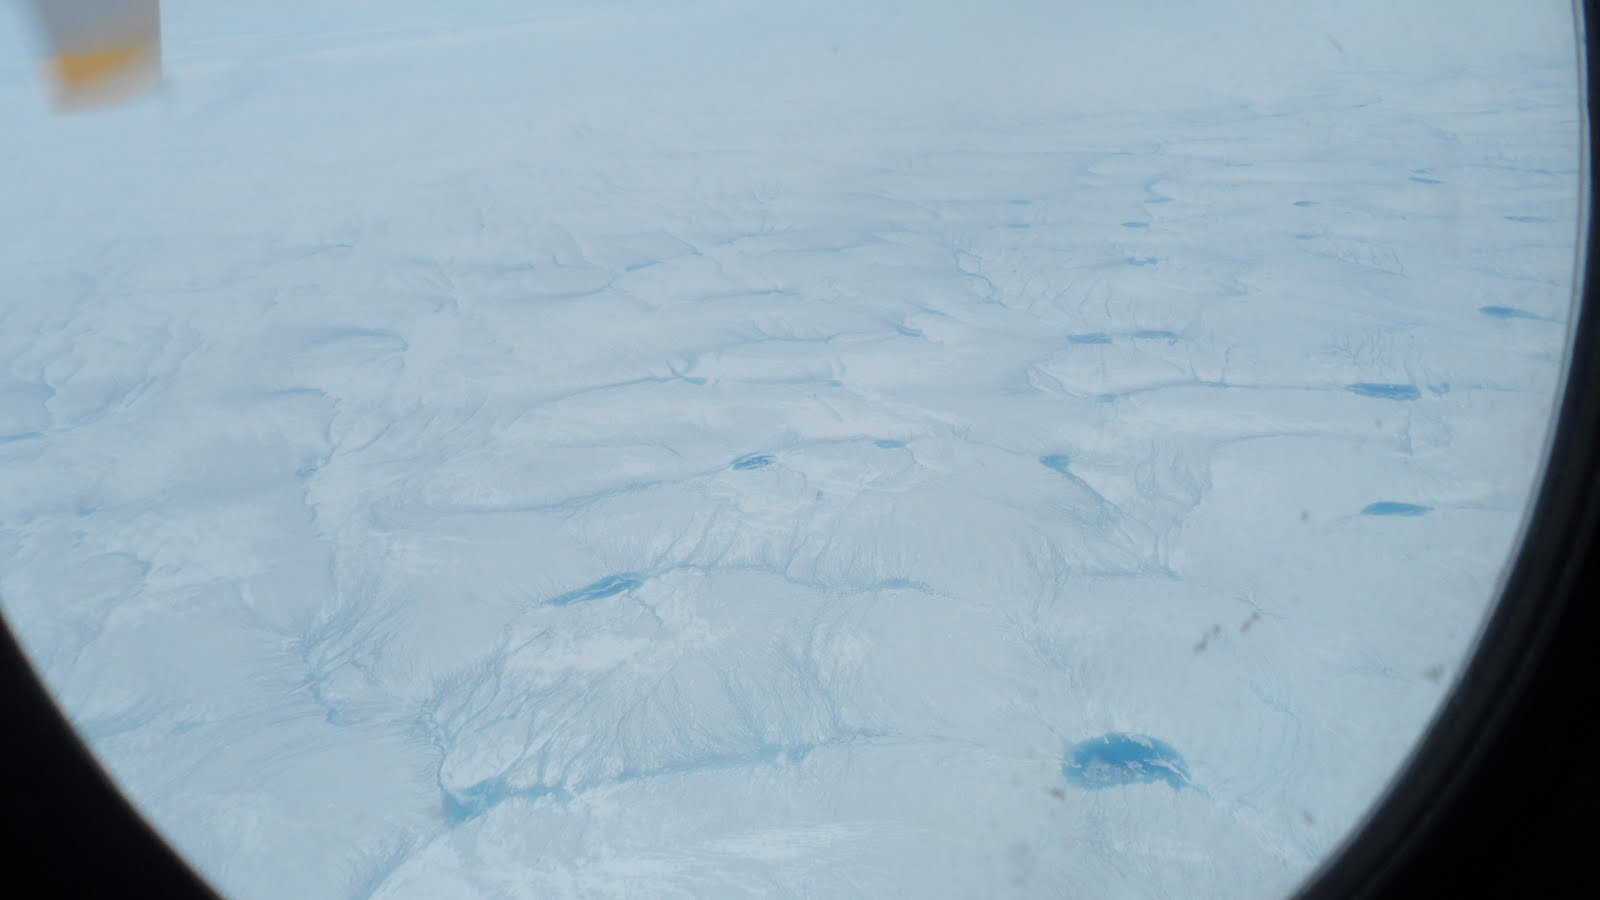 Near the edge of the Ice Sheet, spectacularly colored blue melt ponds and streams can be seen from the window of the C-130